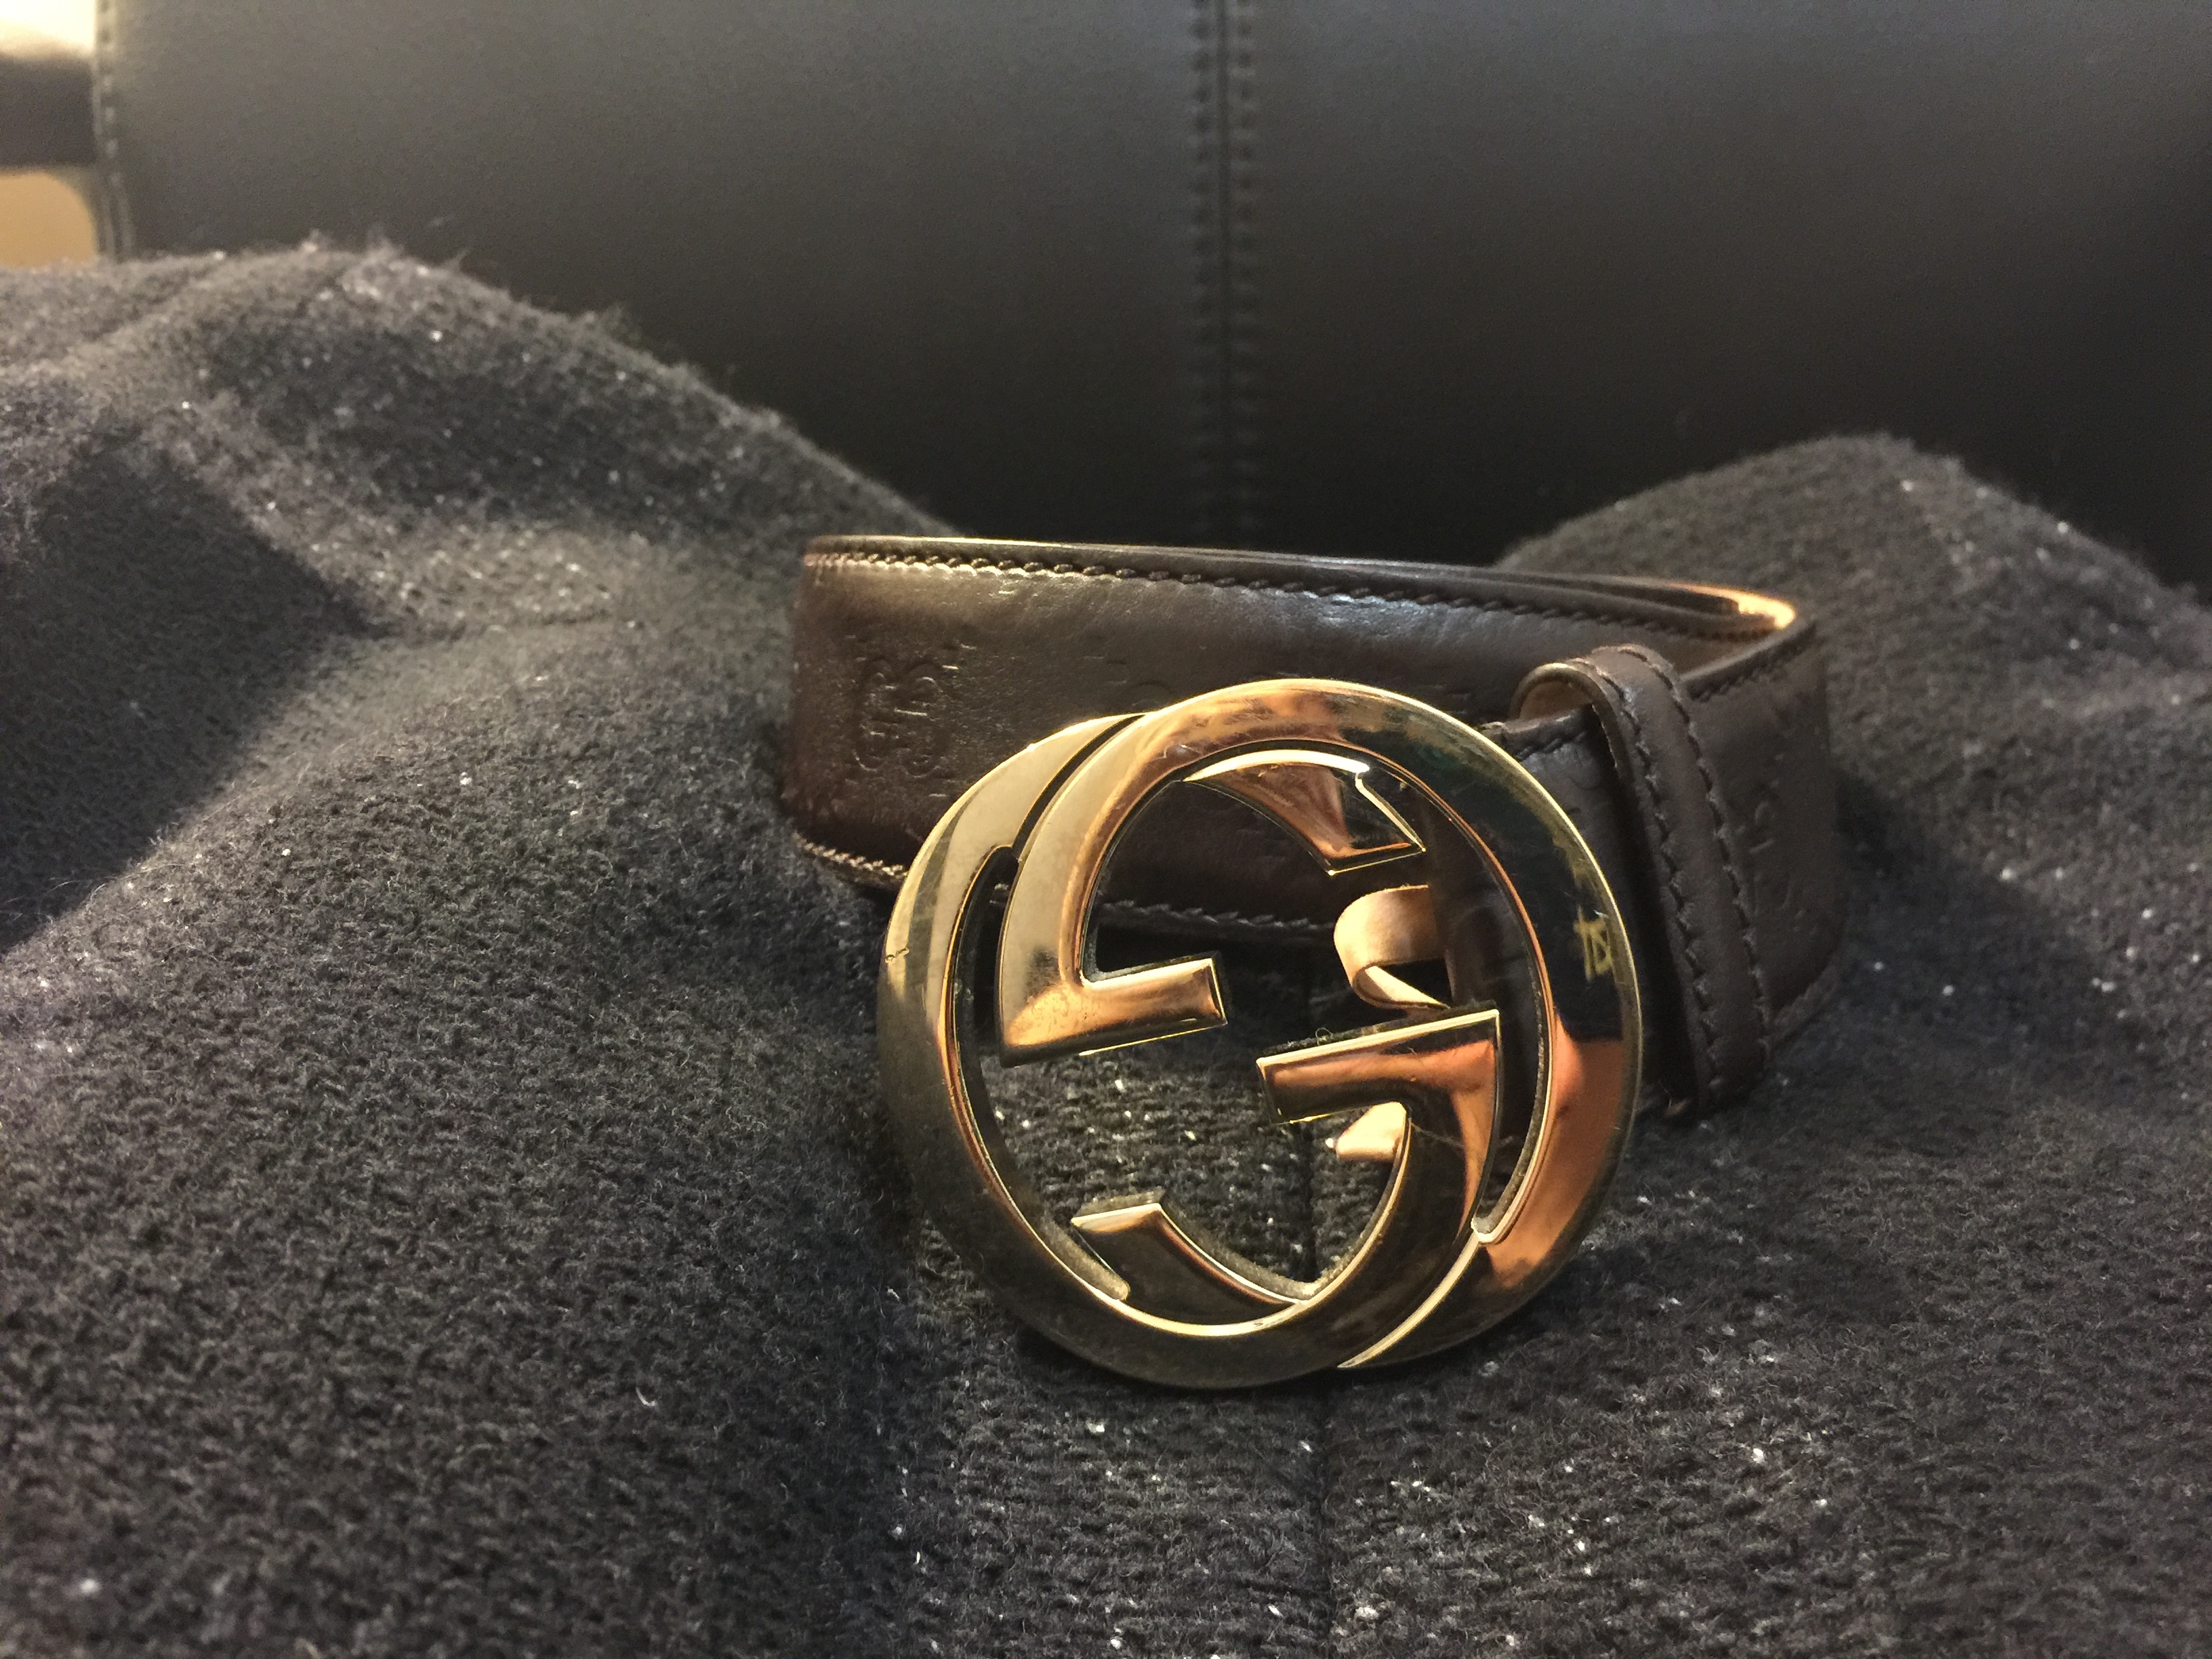 44584f2ad Gucci Guccissima Leather Belt With Interlocking G Buckle | Grailed